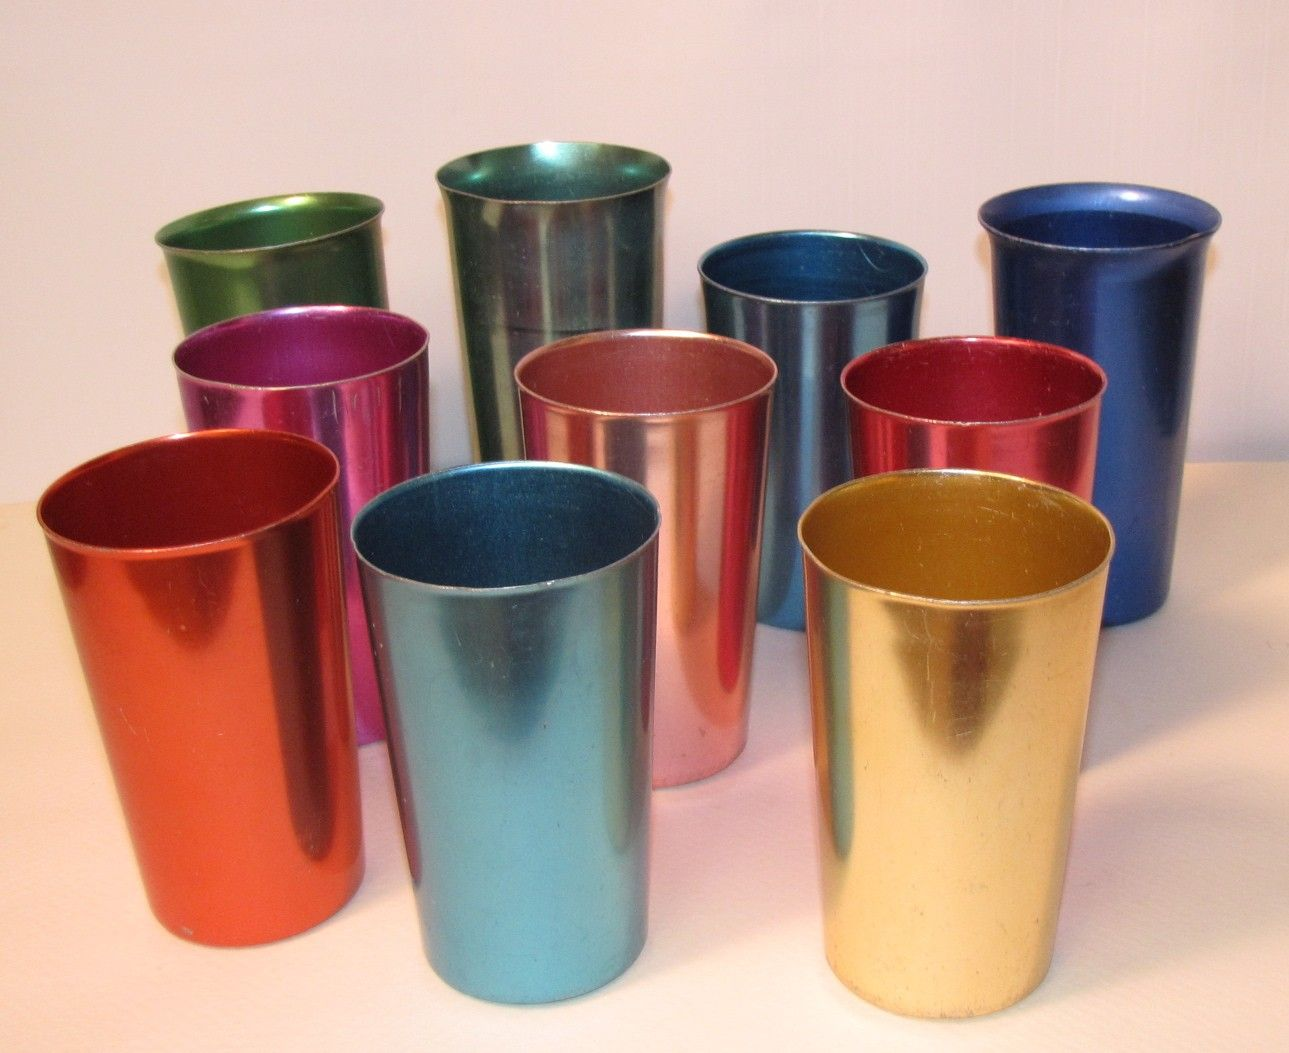 10 pc vintage anodized aluminum drinking glass set 1950s mcm keeps drinks icy